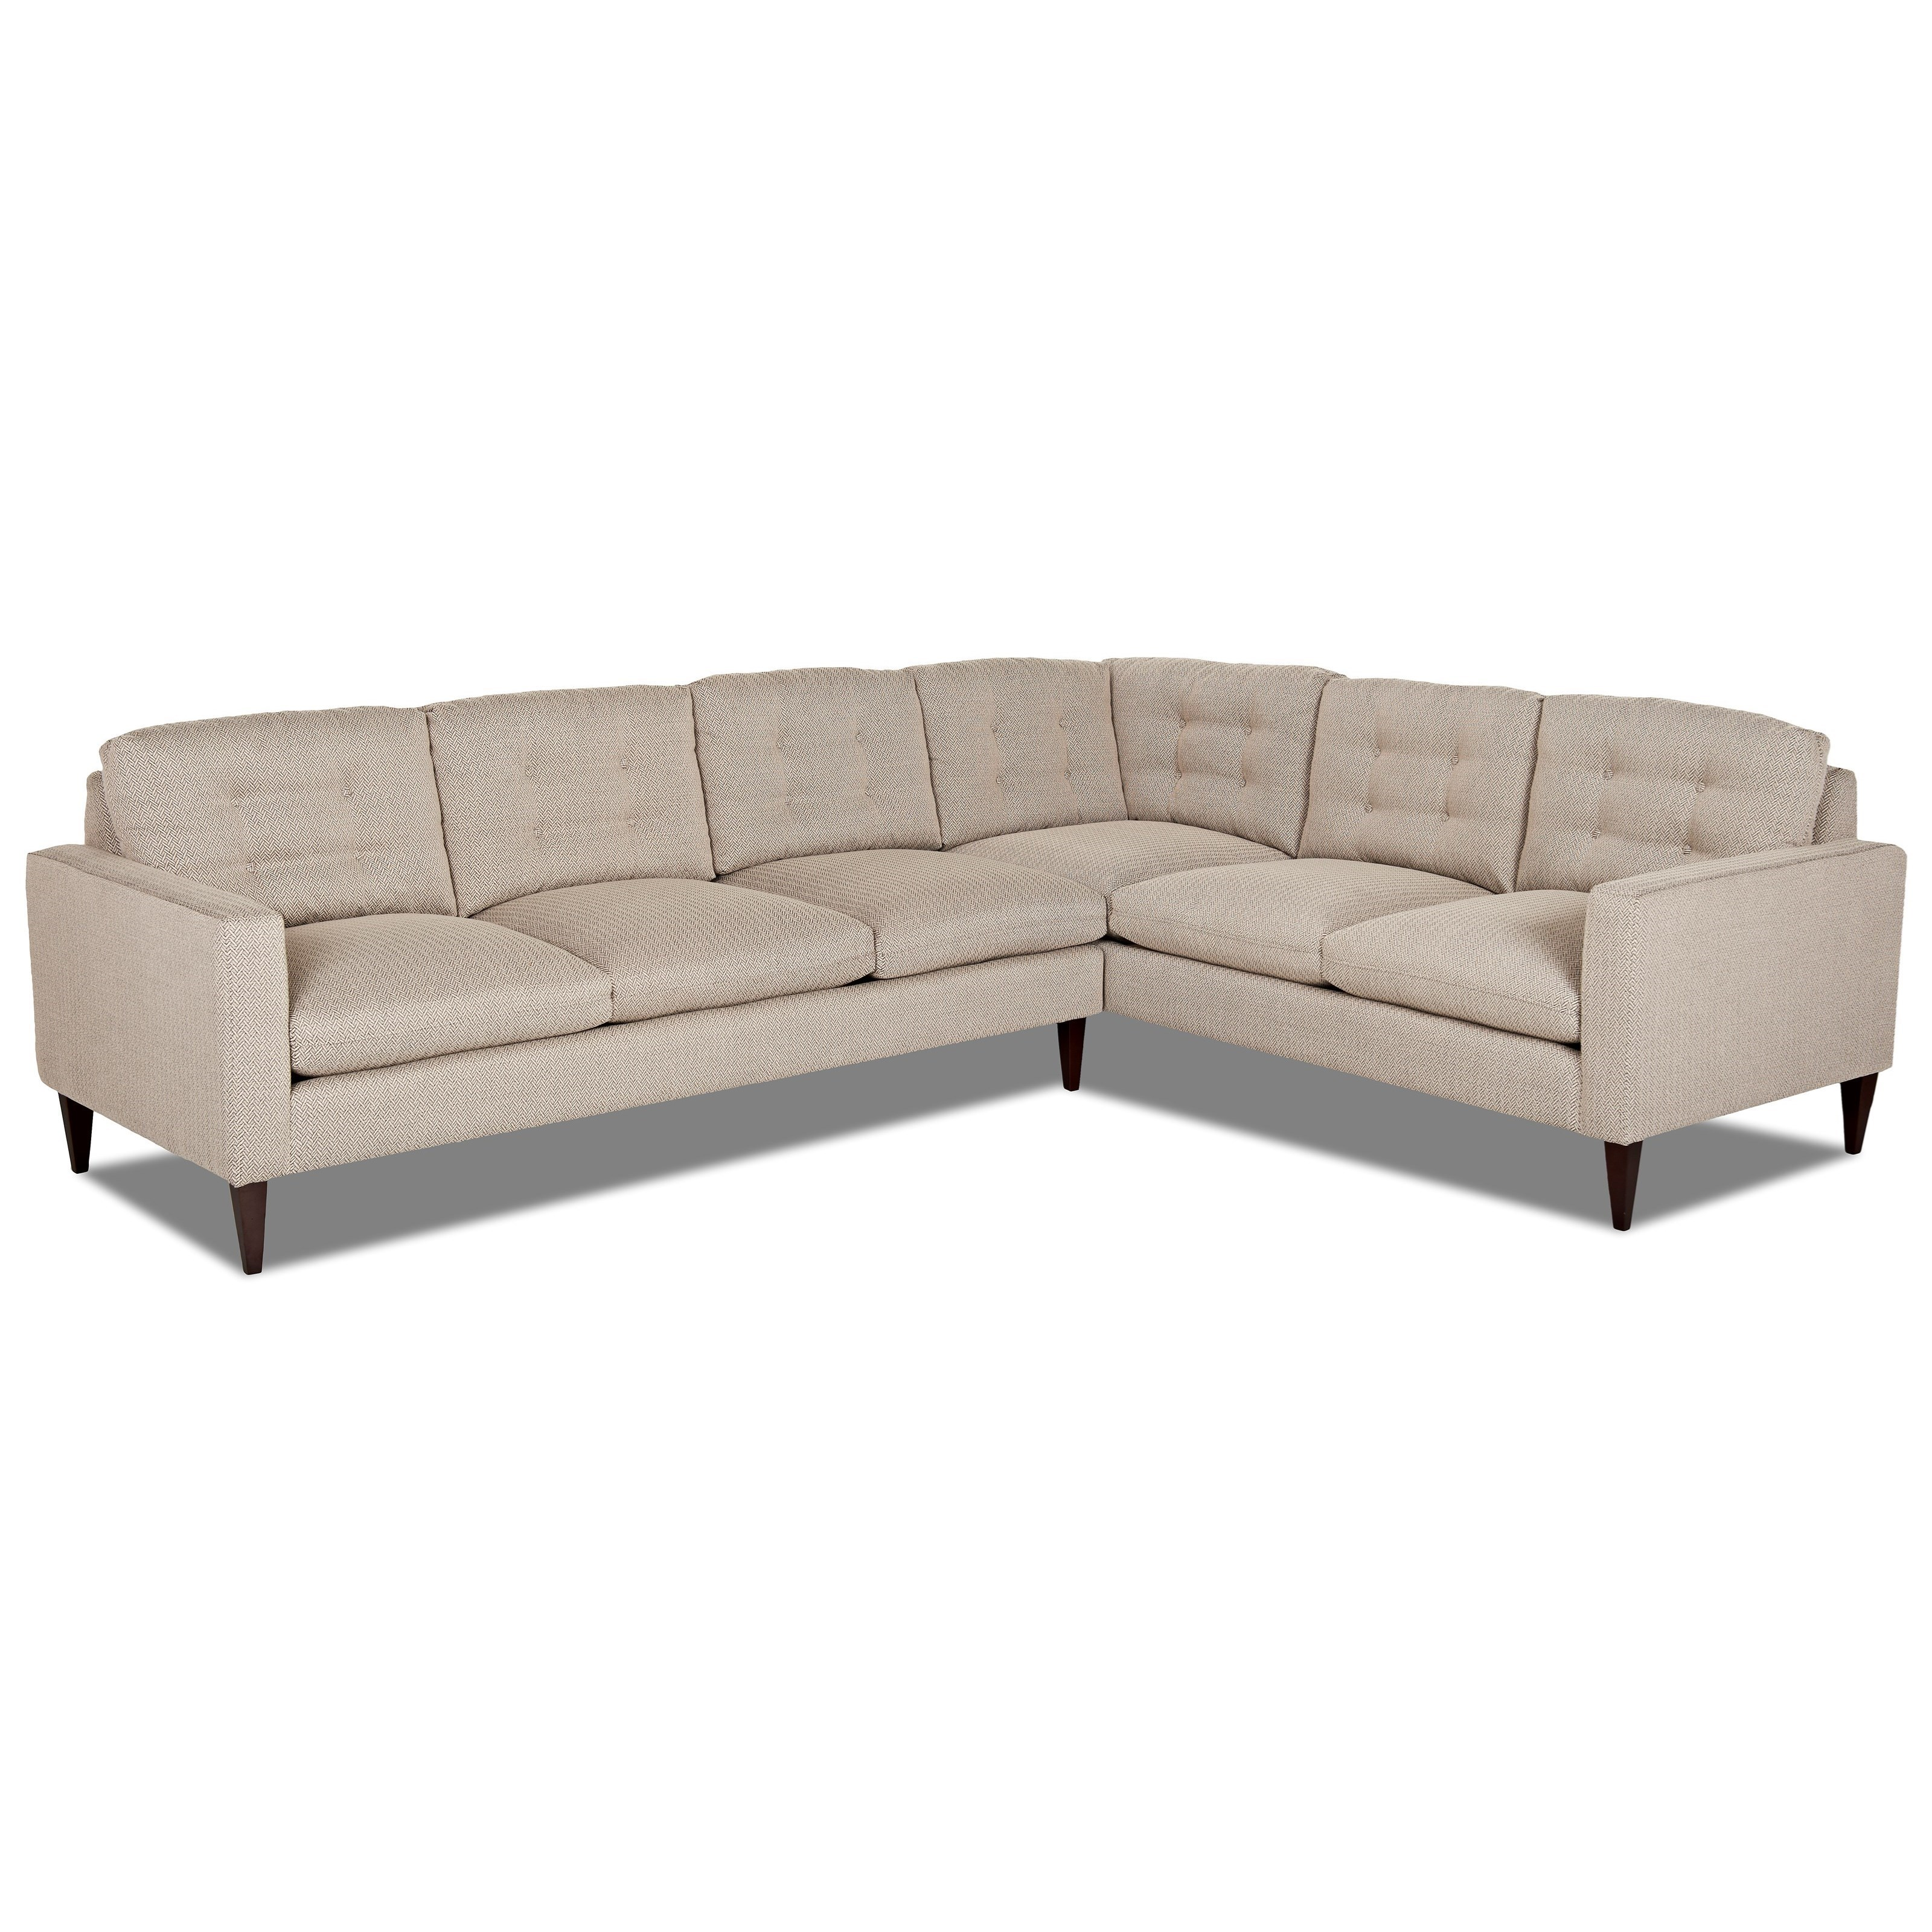 Klaussner Florence Mid Century Modern Sectional Sofa With Right Arm Facing Corner  Sofa